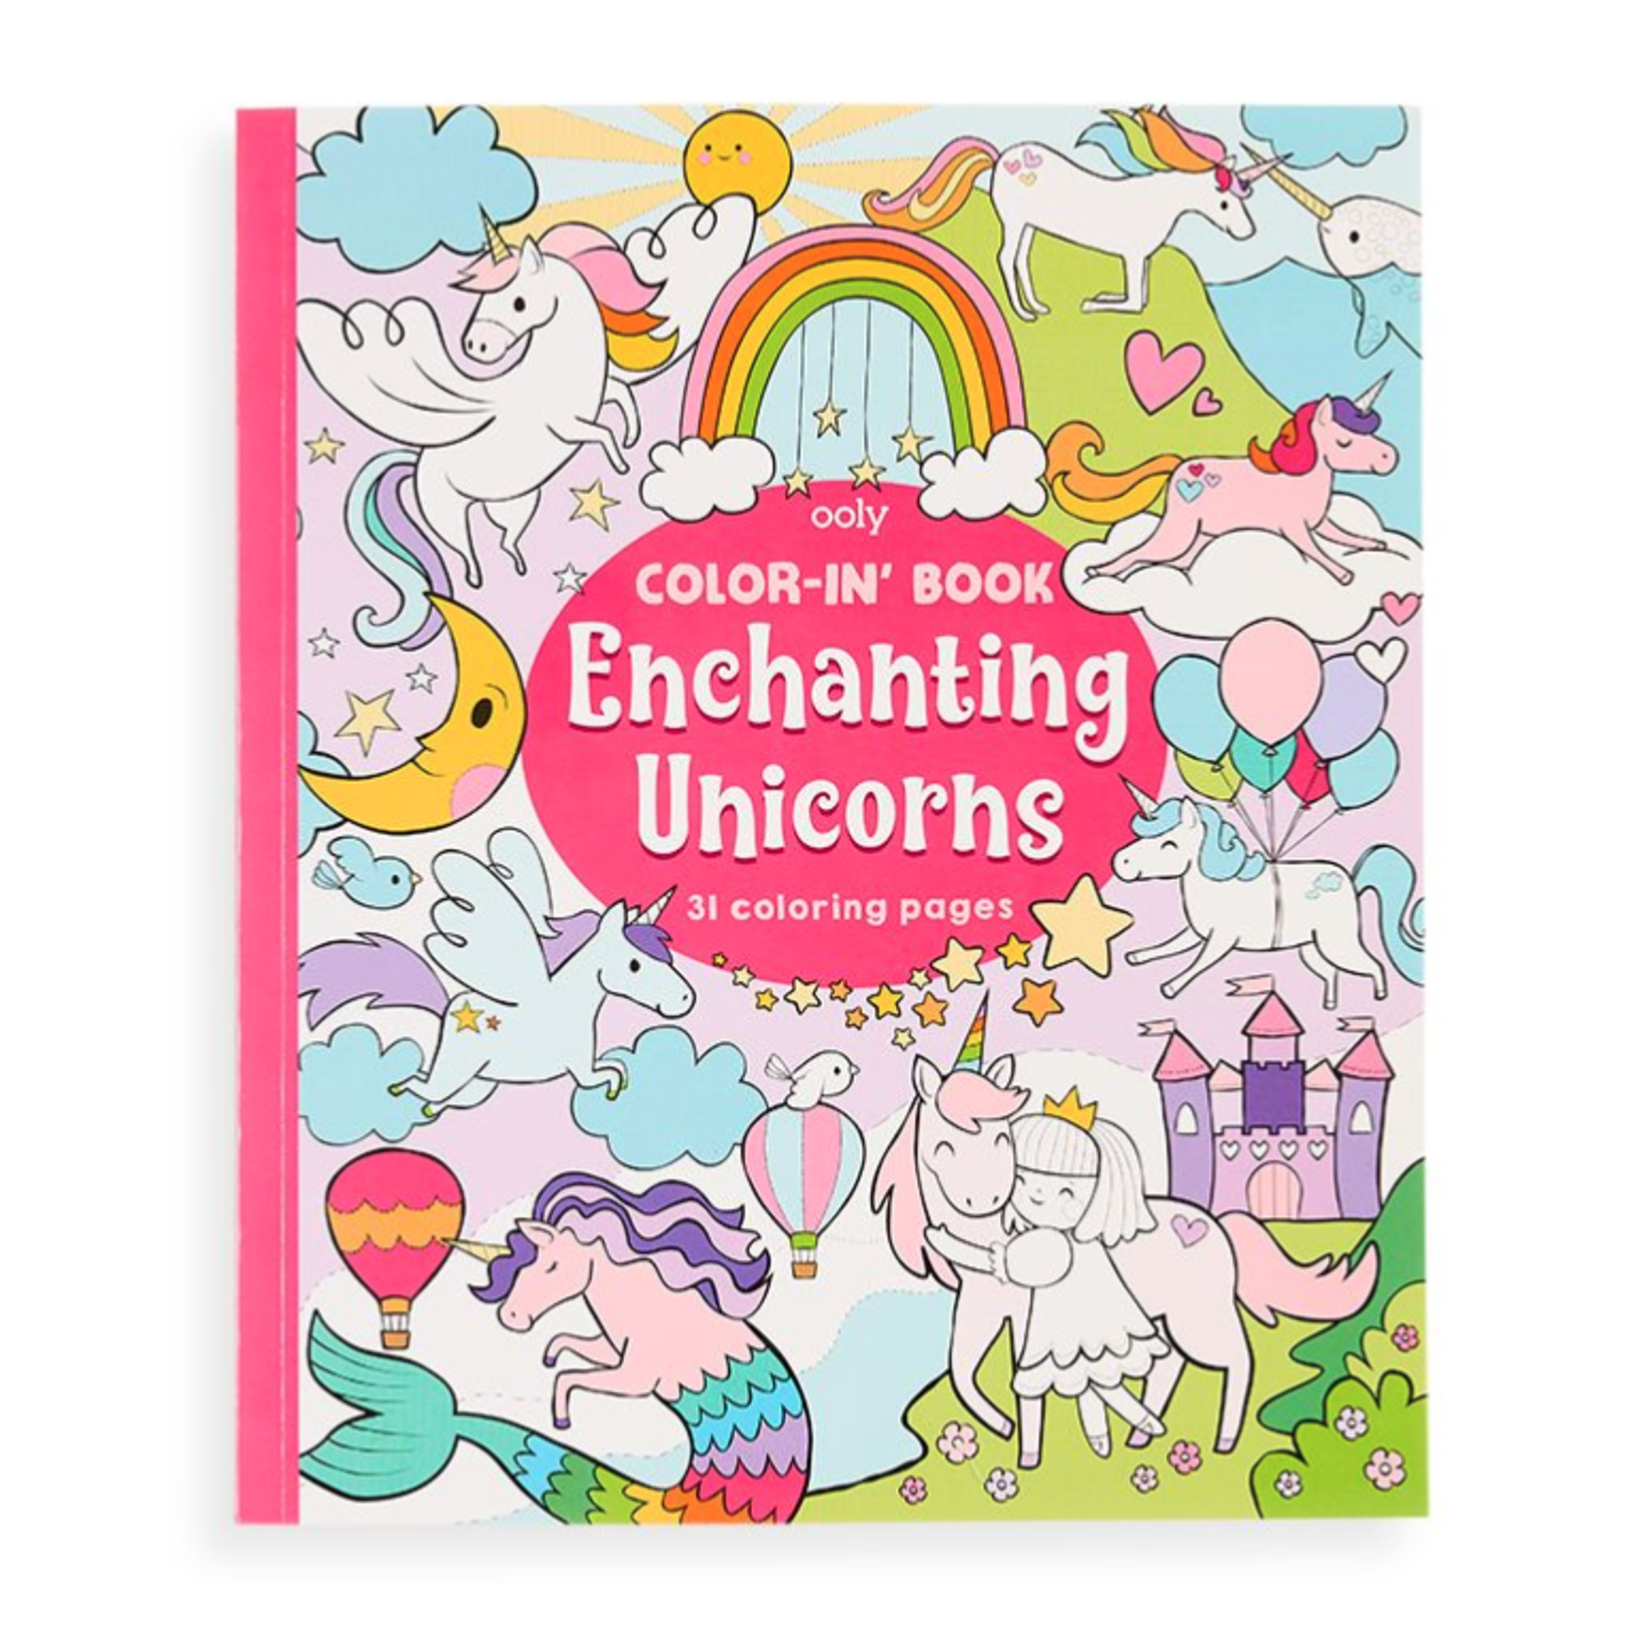 Ooly Color-in' Book: Enchanting Unicorns